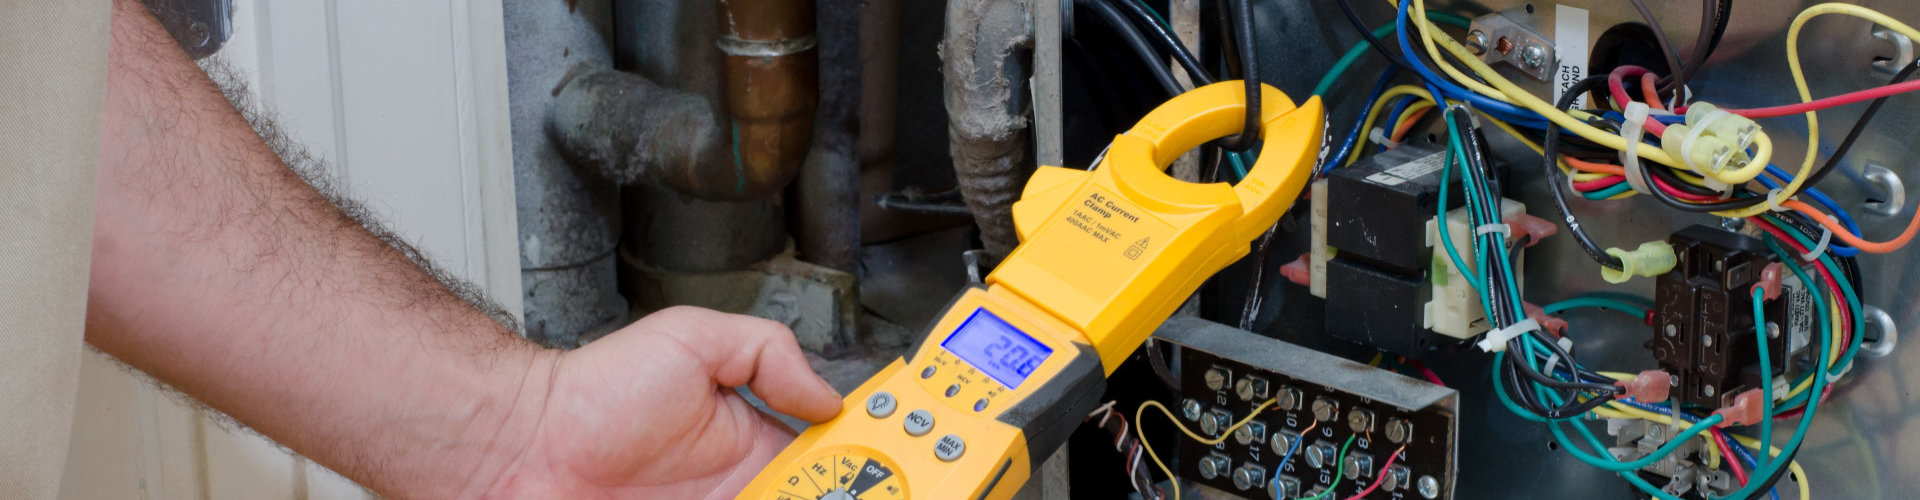 technician checking the amperage